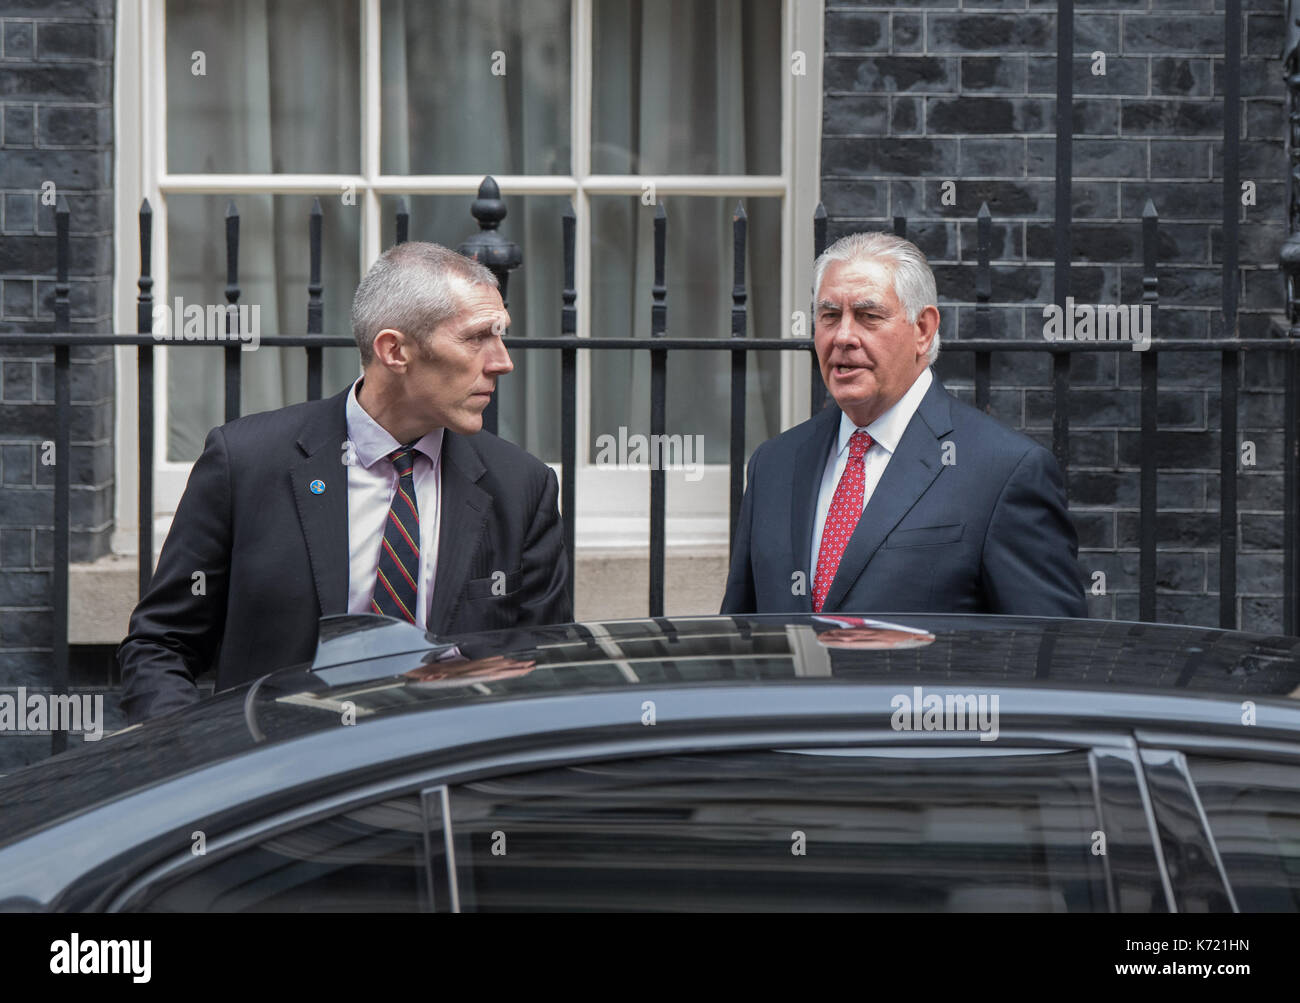 London, United Kingdom. 14 September 2017. US Secretary of State, Rex Tillerson leaves 10 Downing Street after a - Stock Image